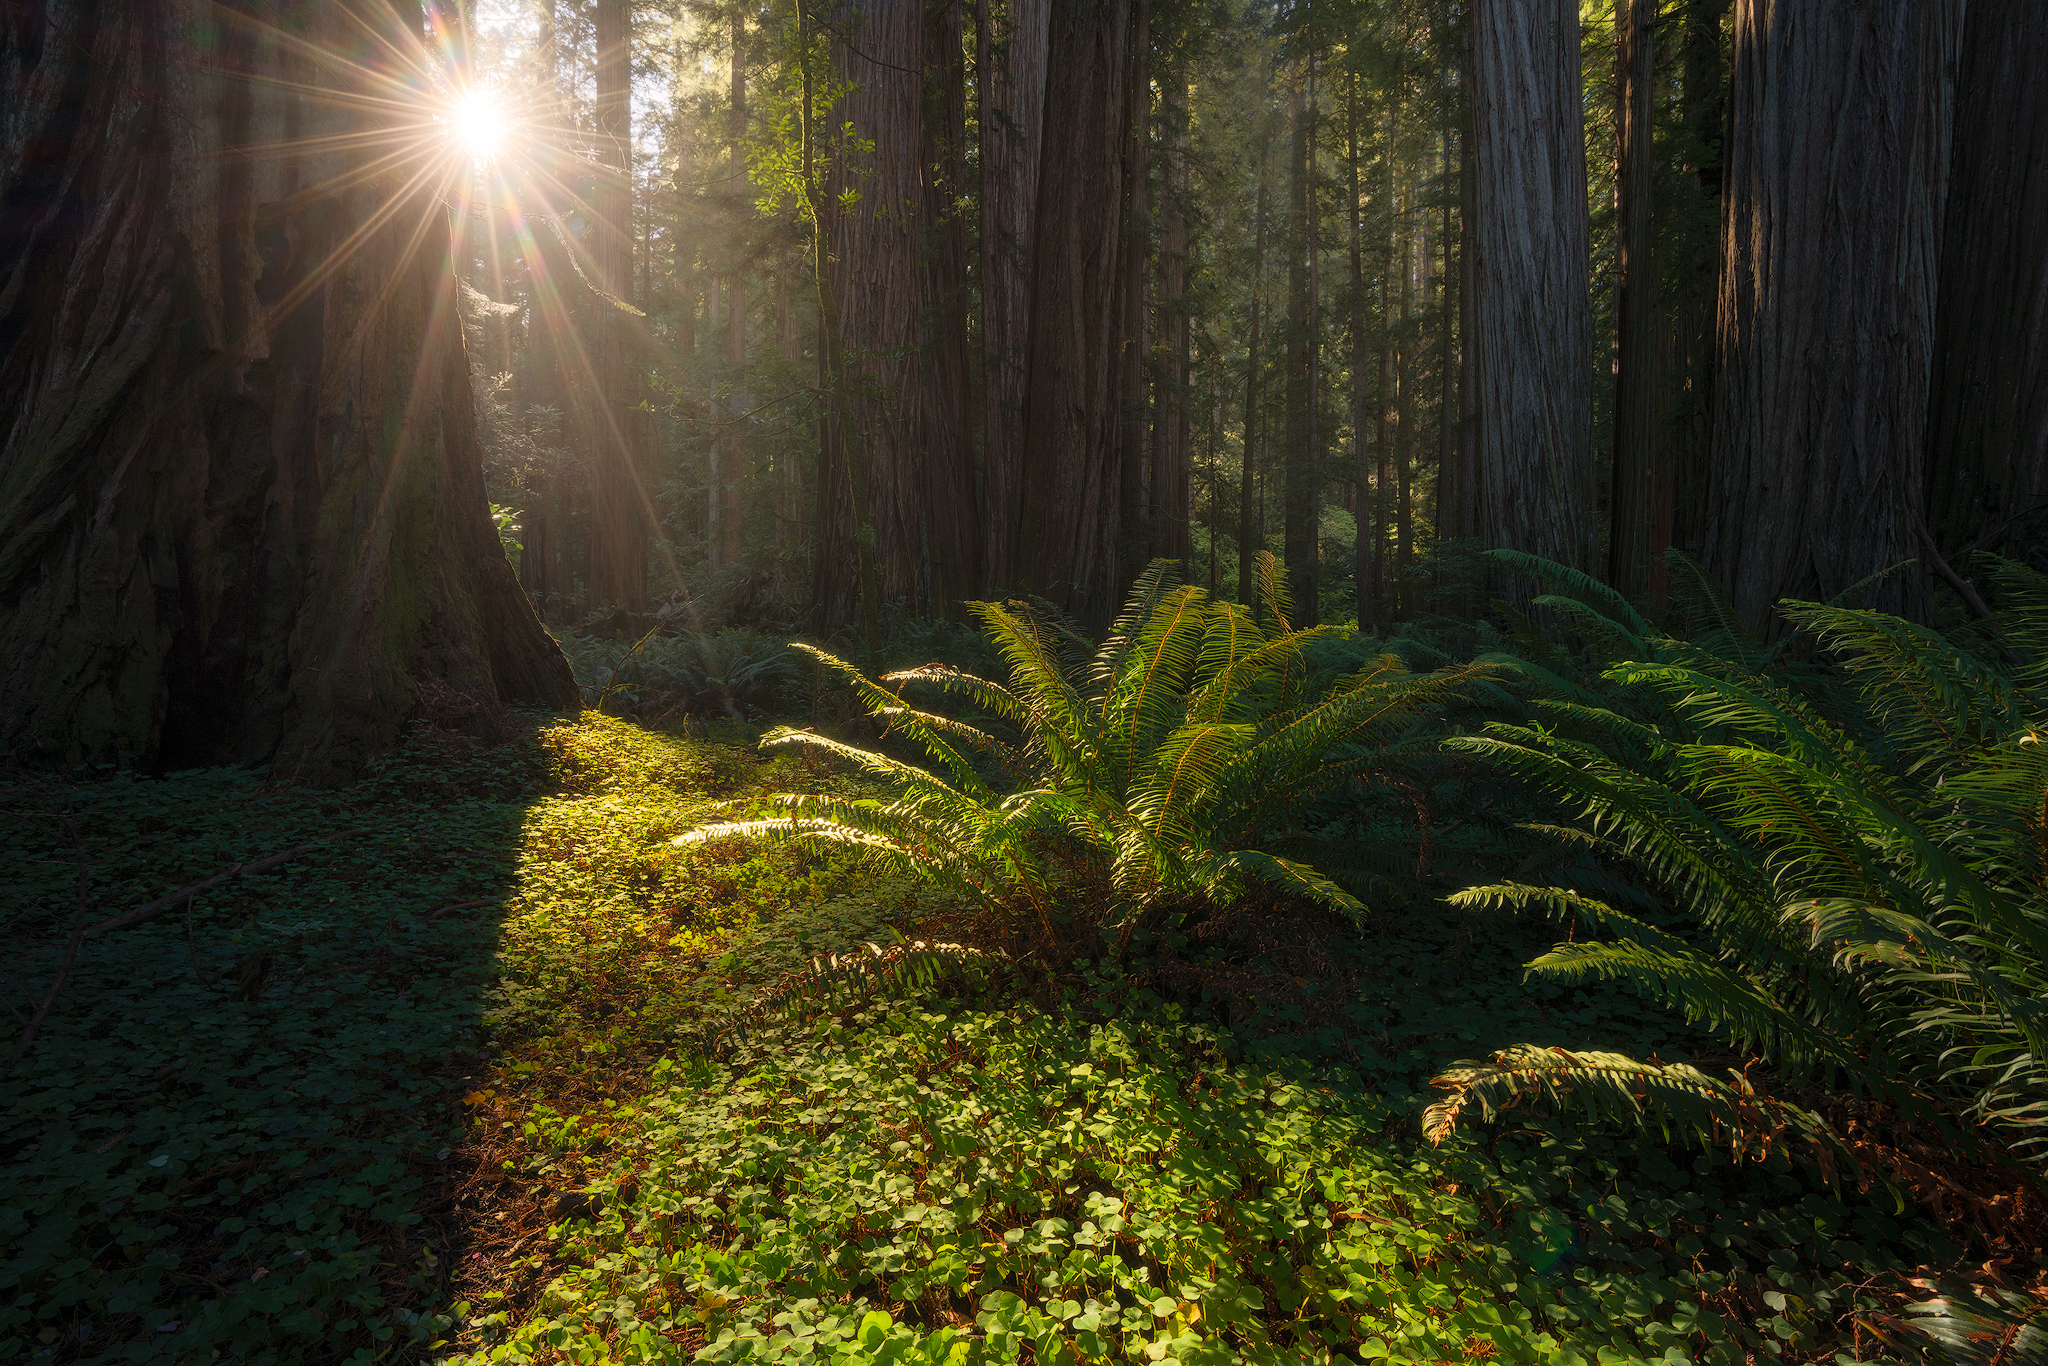 sun-in-the-forest.jpg